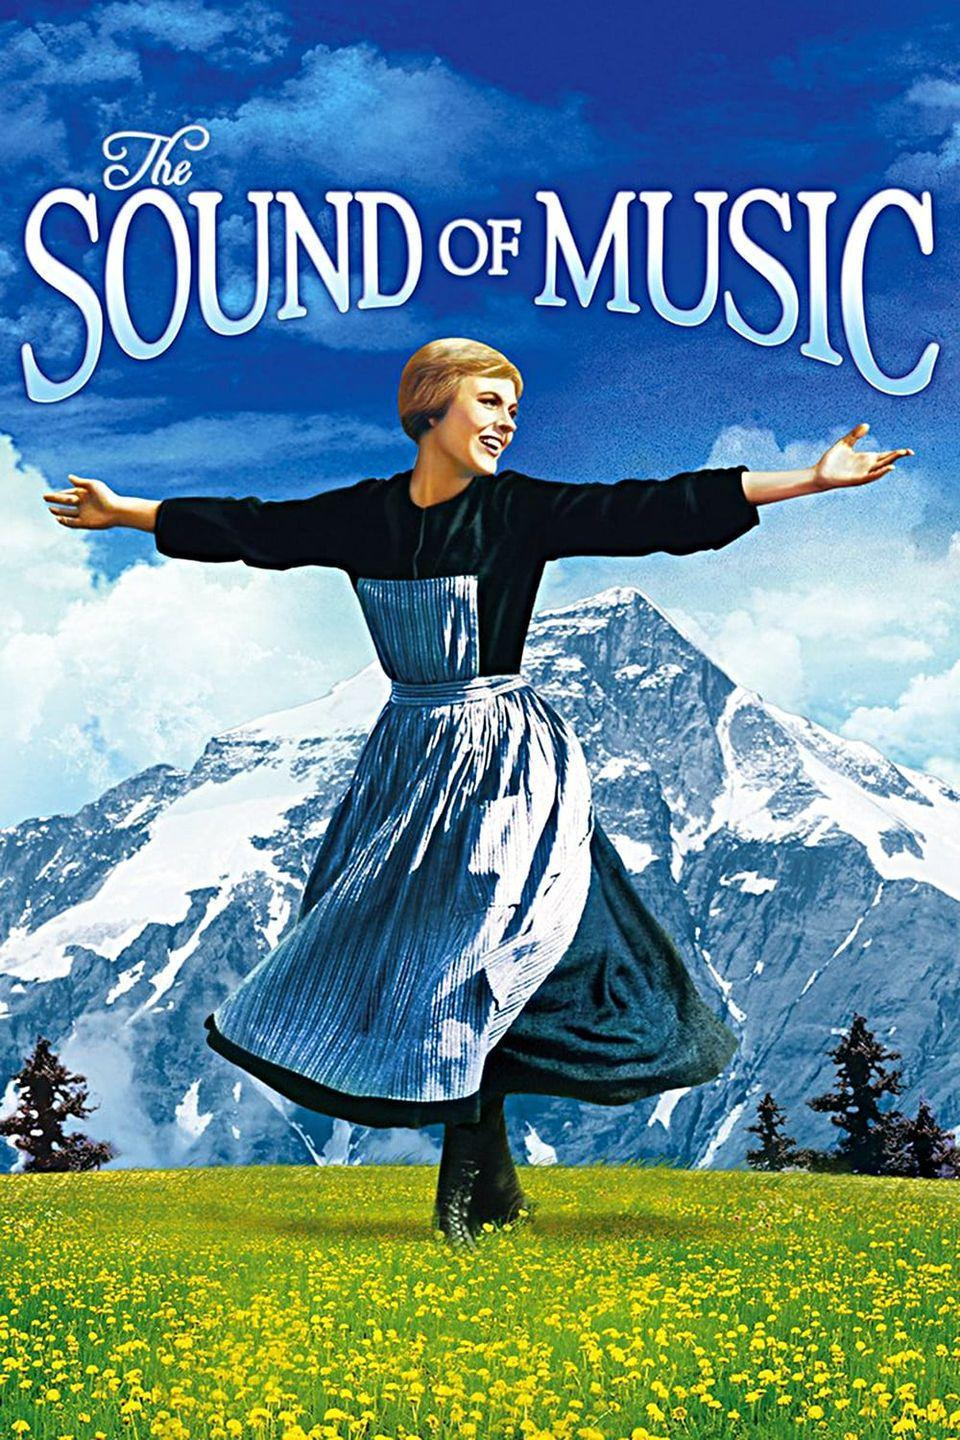 """<p>Julie Andrews as Maria running through the meadow singing """"The Hills are Alive"""" is just one of those movie scenes that will forever be in the pop culture zeitgeist. This movie about a nun who takes a job as governess for the children of a stern captain is a Best Picture winner and impossible not to sing along to.</p><p><a class=""""link rapid-noclick-resp"""" href=""""https://www.amazon.com/Sound-Music-Julie-Andrews/dp/B009EELBIS/ref=sr_1_1?tag=syn-yahoo-20&ascsubtag=%5Bartid%7C10072.g.27734413%5Bsrc%7Cyahoo-us"""" rel=""""nofollow noopener"""" target=""""_blank"""" data-ylk=""""slk:WATCH NOW"""">WATCH NOW</a></p>"""